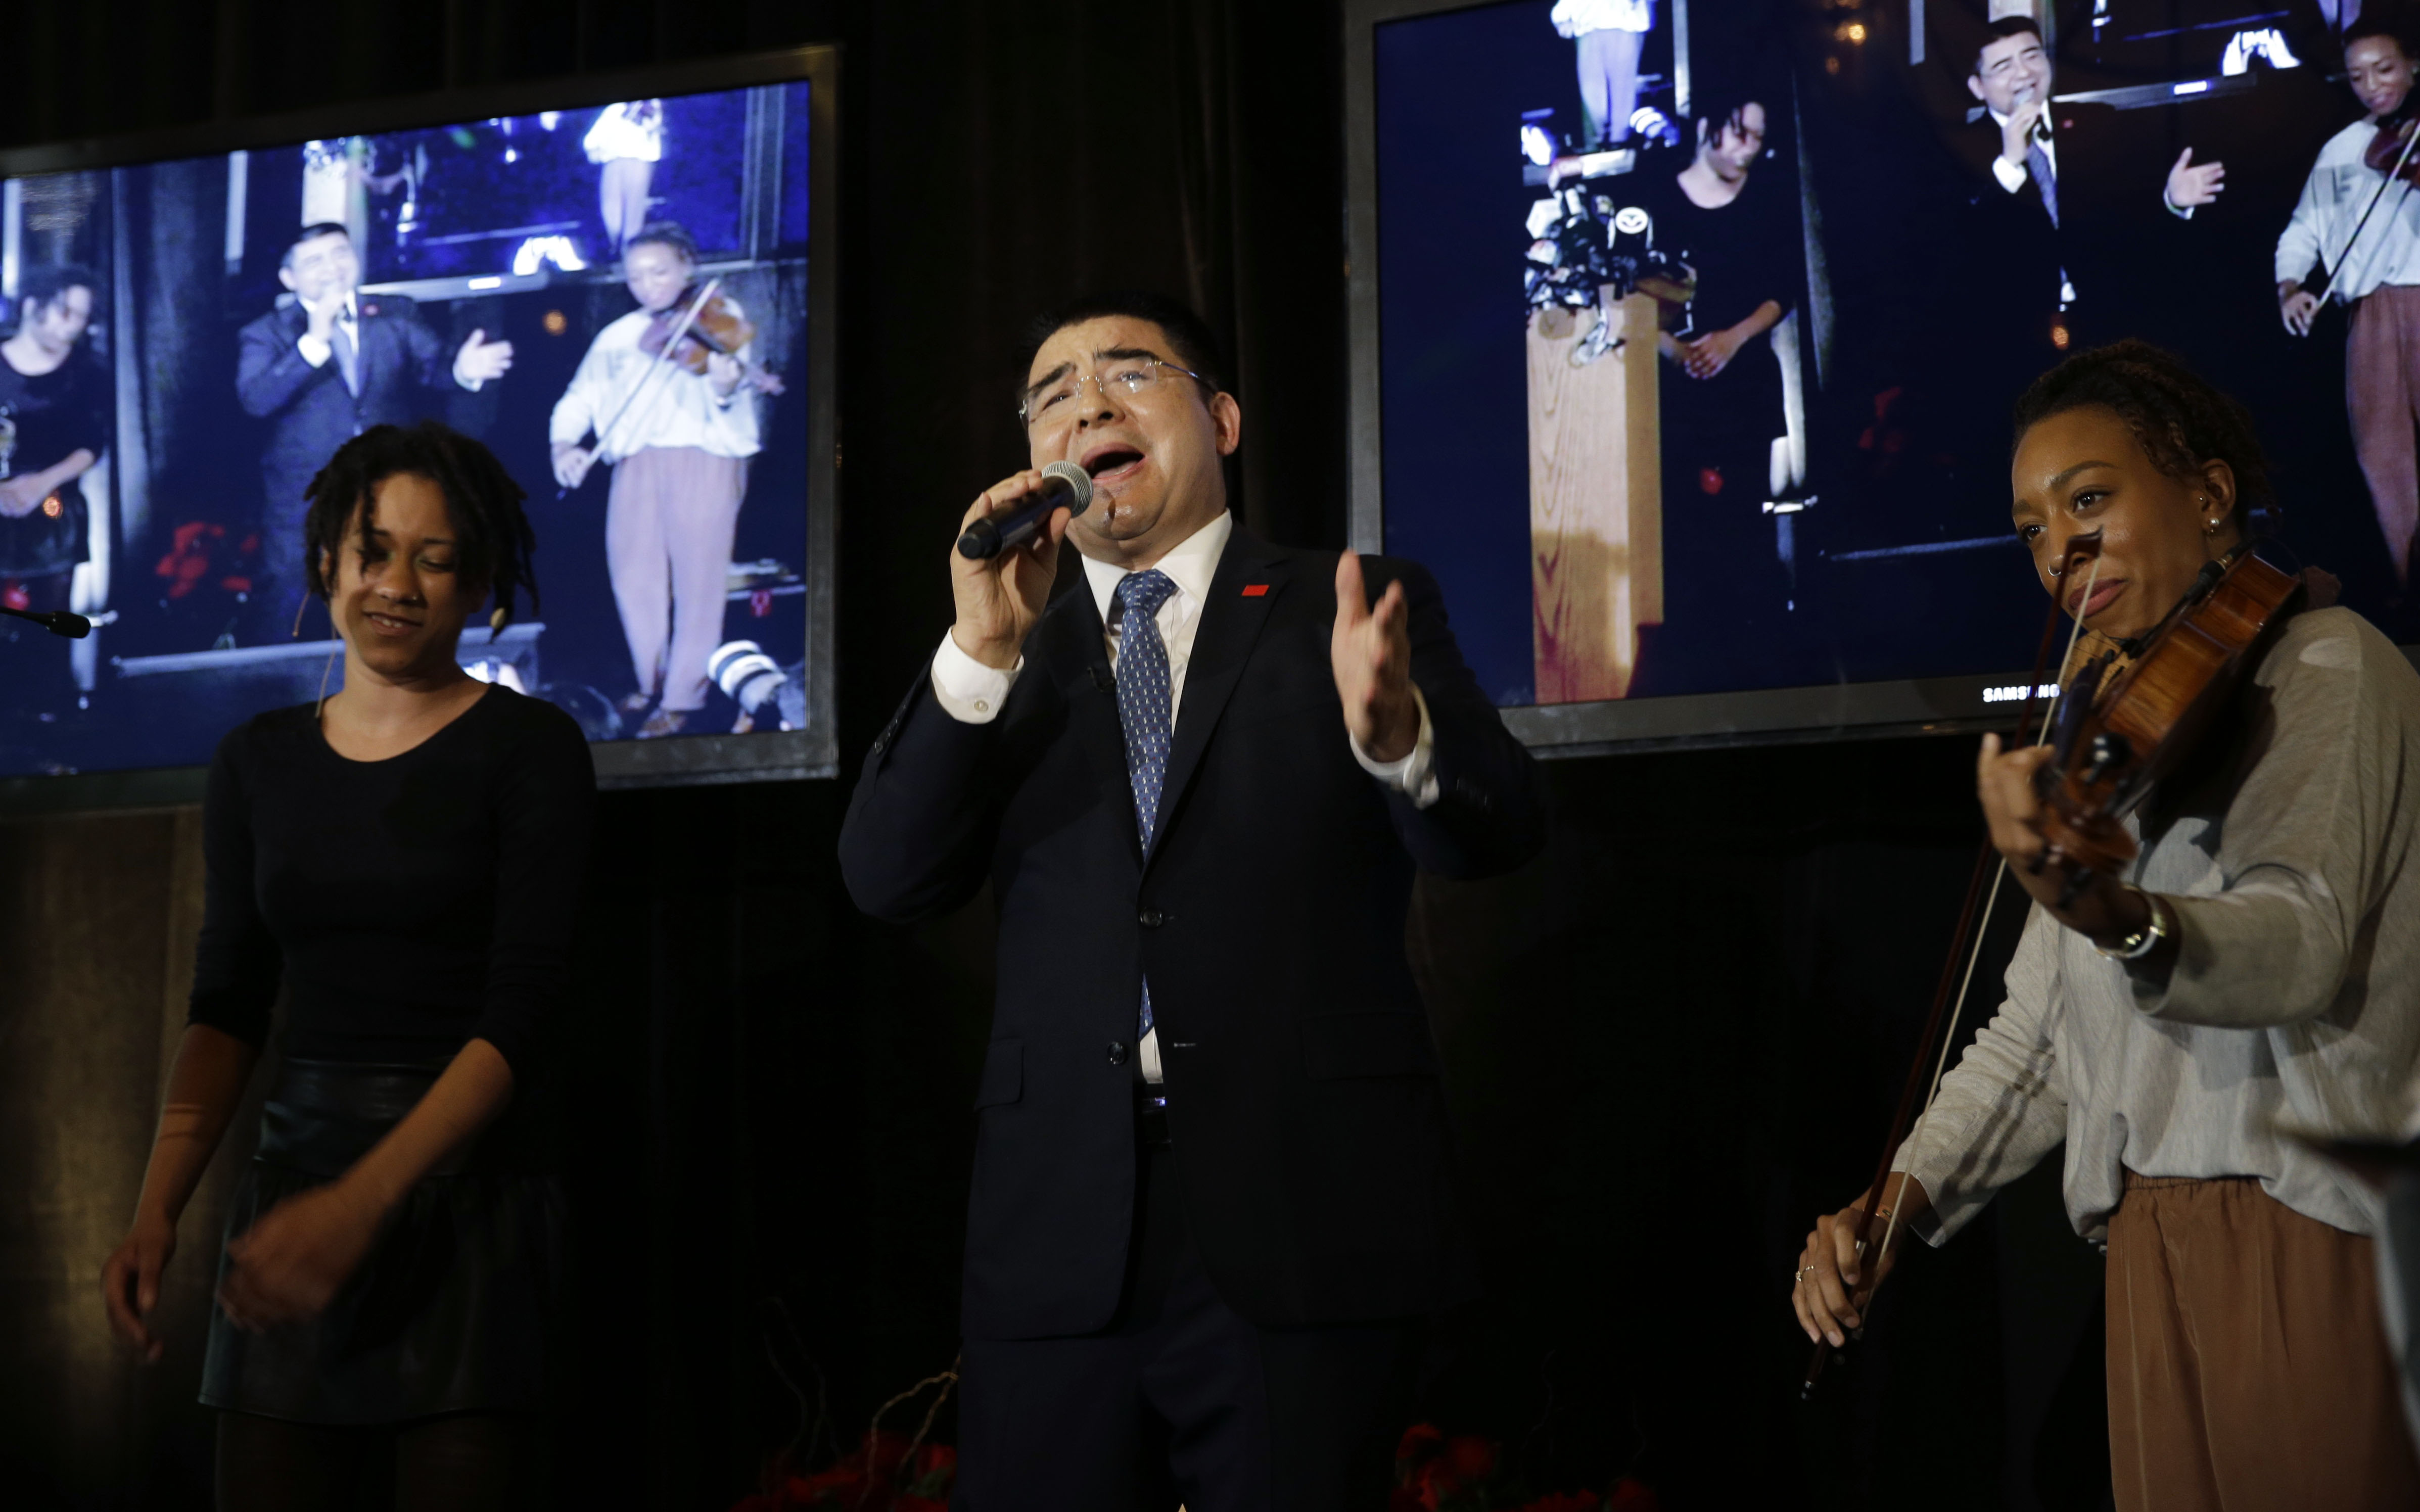 Recycling magnate Chen Guangbiao sings to the media and his guests from the  New York City Rescue Mission at The Loeb Boathouse restaurant in New York, Wednesday, June 25, 2014. The Chinese tycoon known for his sometimes eccentric gestures served up a fancy lunch Wednesday to hundreds of homeless New Yorkers at a Central Park restaurant and serenaded them with  We are the World.  Chen said he wants to disprove the cliche image of rich Chinese spending money mostly on luxuries. (AP Photo/Seth Wenig)